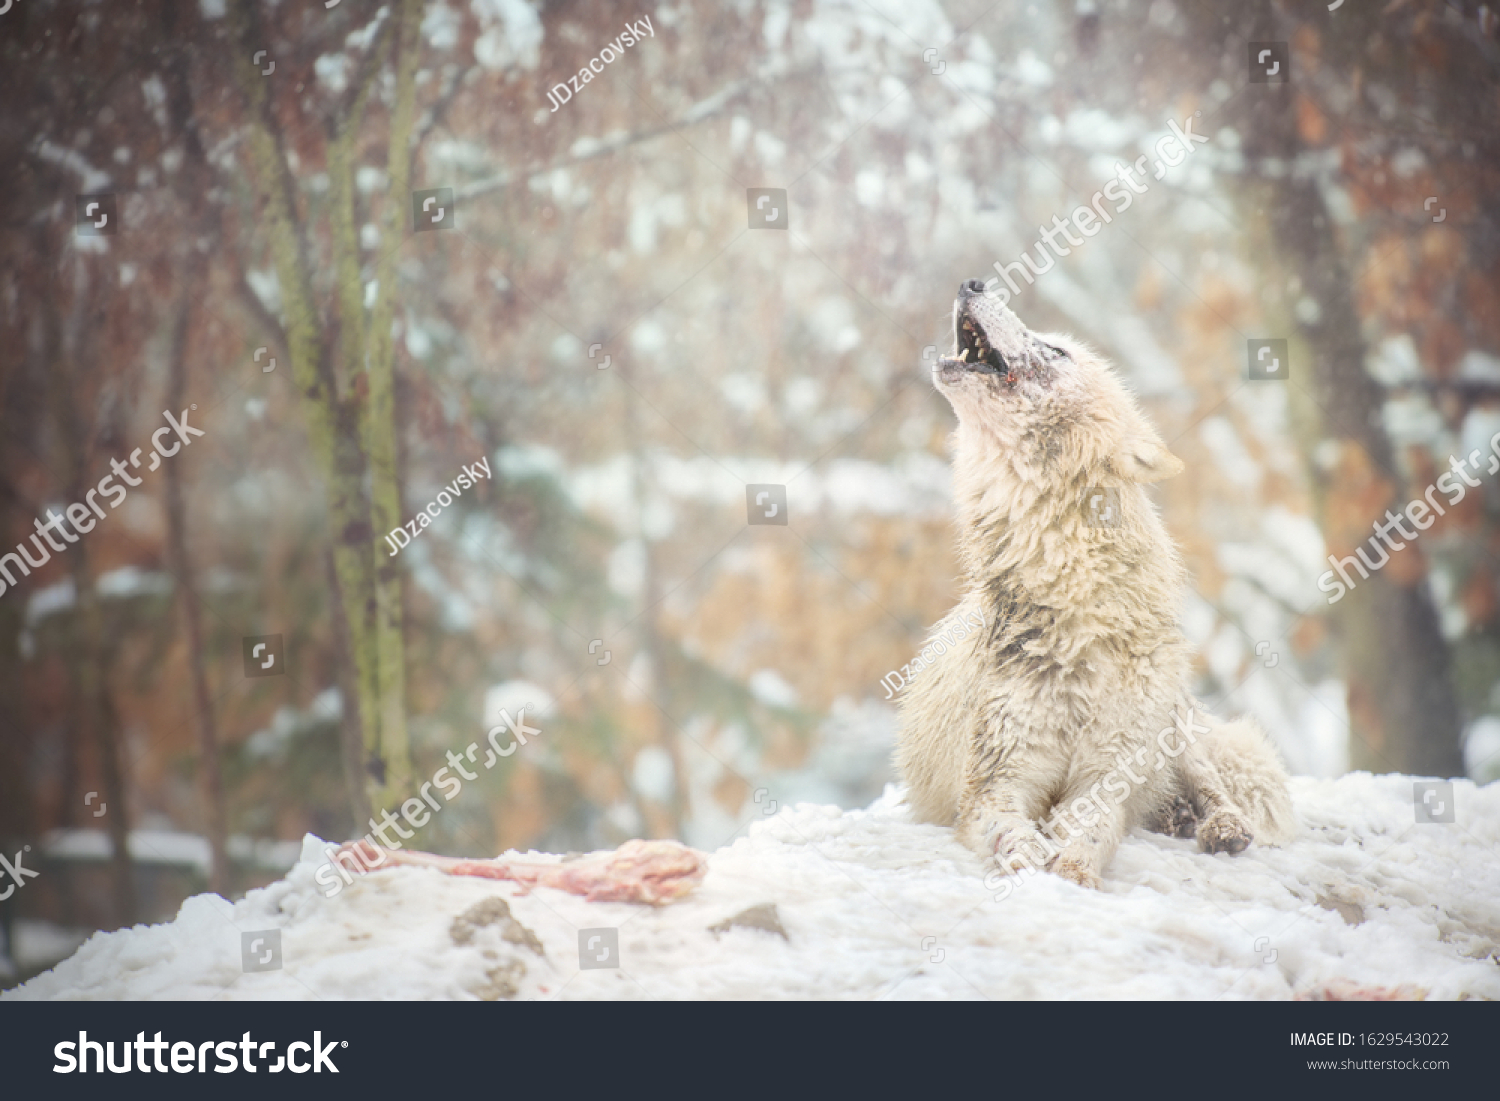 Howling arctic wolf with bone lying on snowy ground. Also known as the white wolf or polar wolf.